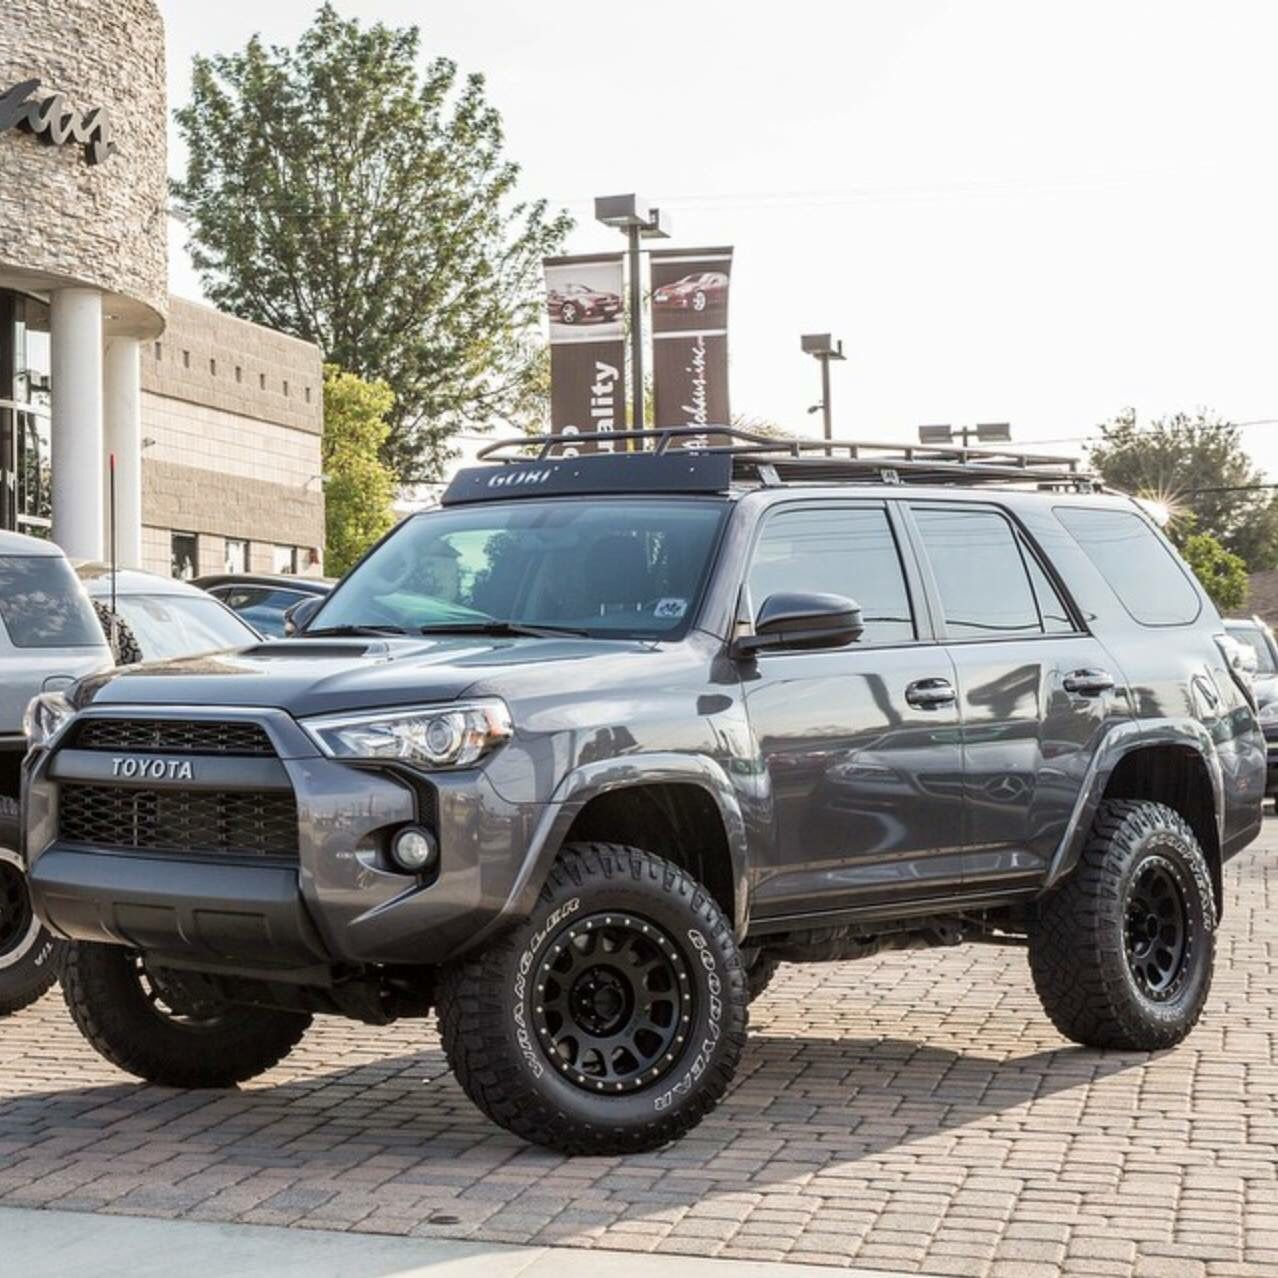 Toyota 4 Runner With Method Wheels I Ll